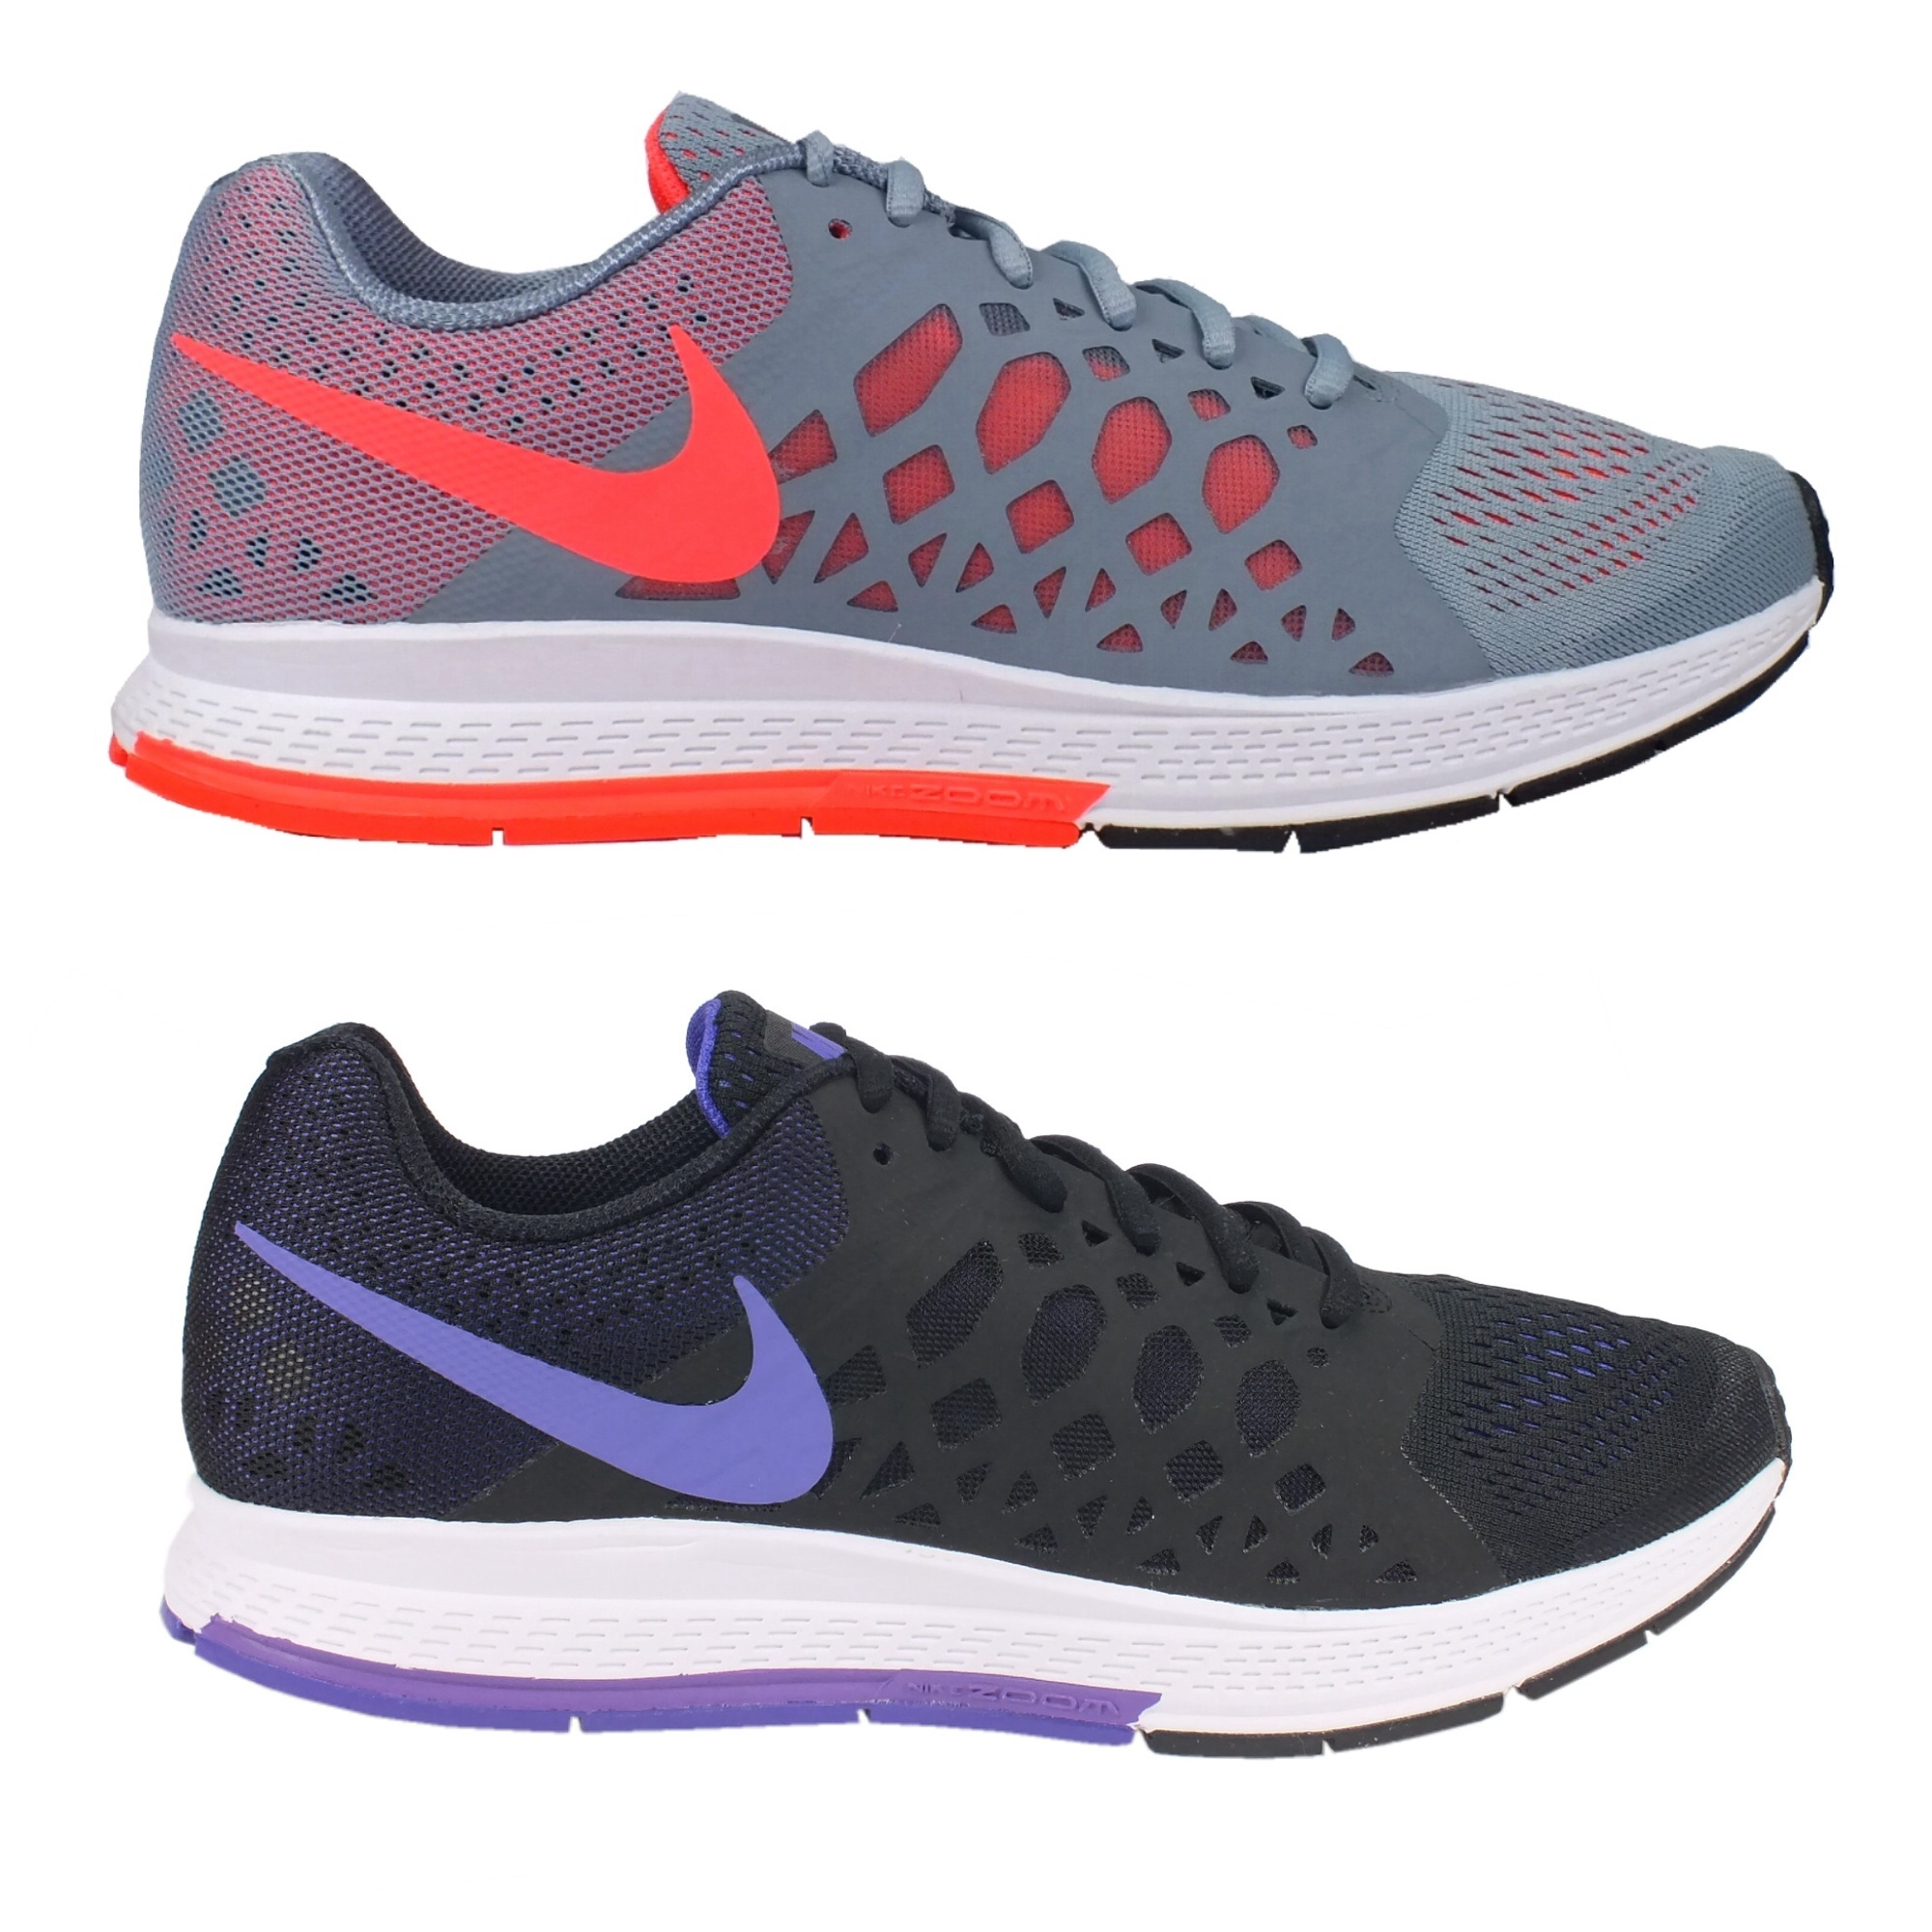 nike air zoom pegasus 31 schuhe laufschuhe sneaker damen. Black Bedroom Furniture Sets. Home Design Ideas